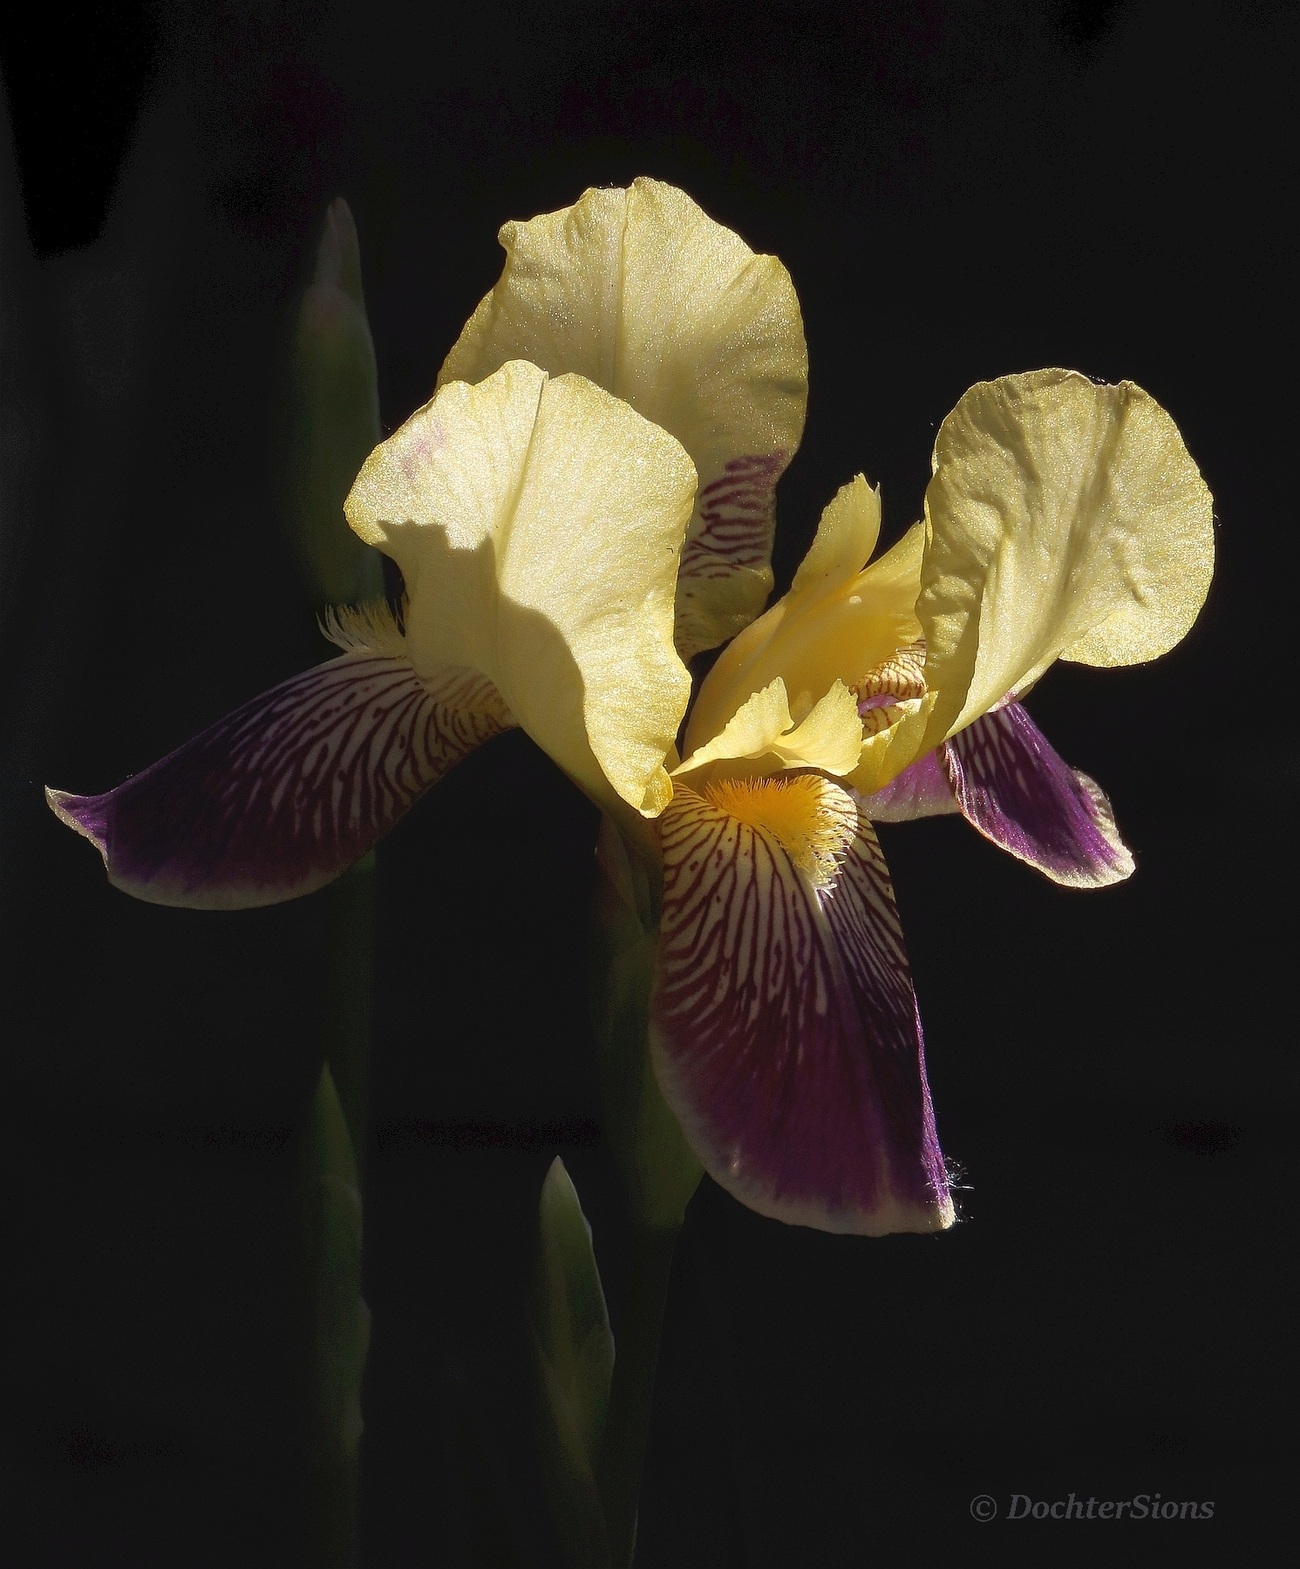 An Iris called by dochtersions